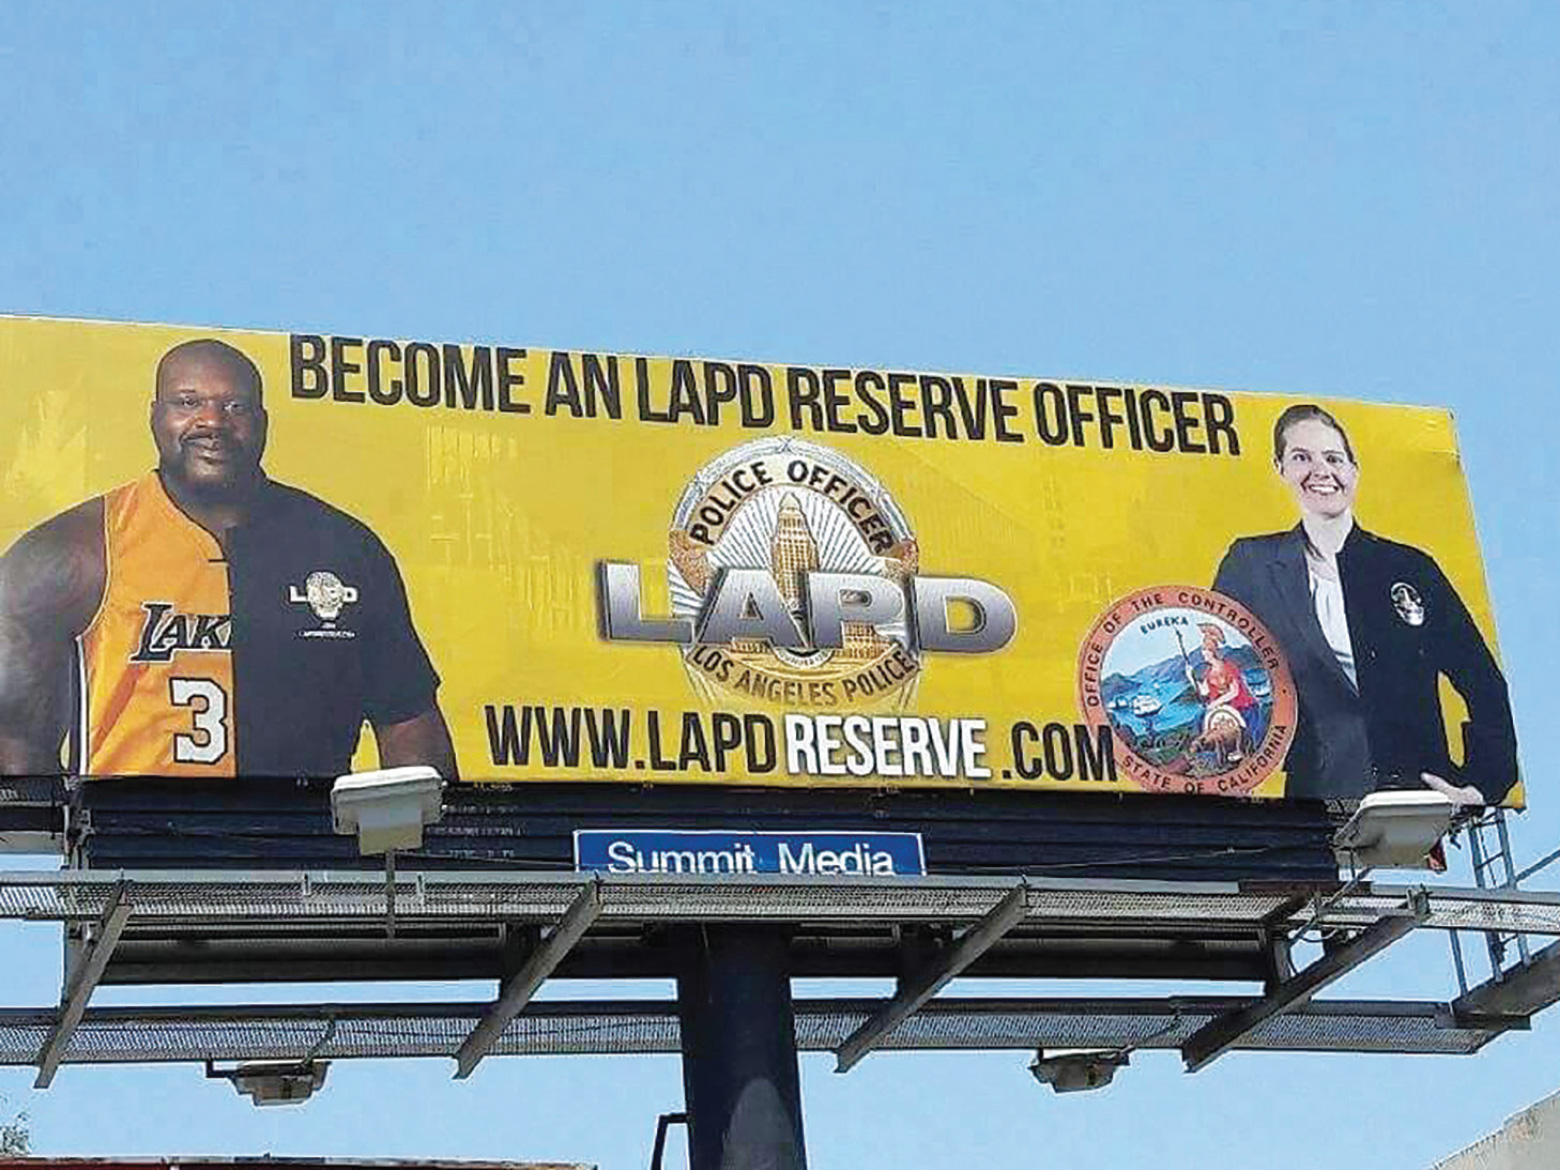 lapd-reserve-corps-70-years-of-protecting-and-serving-22-billboard